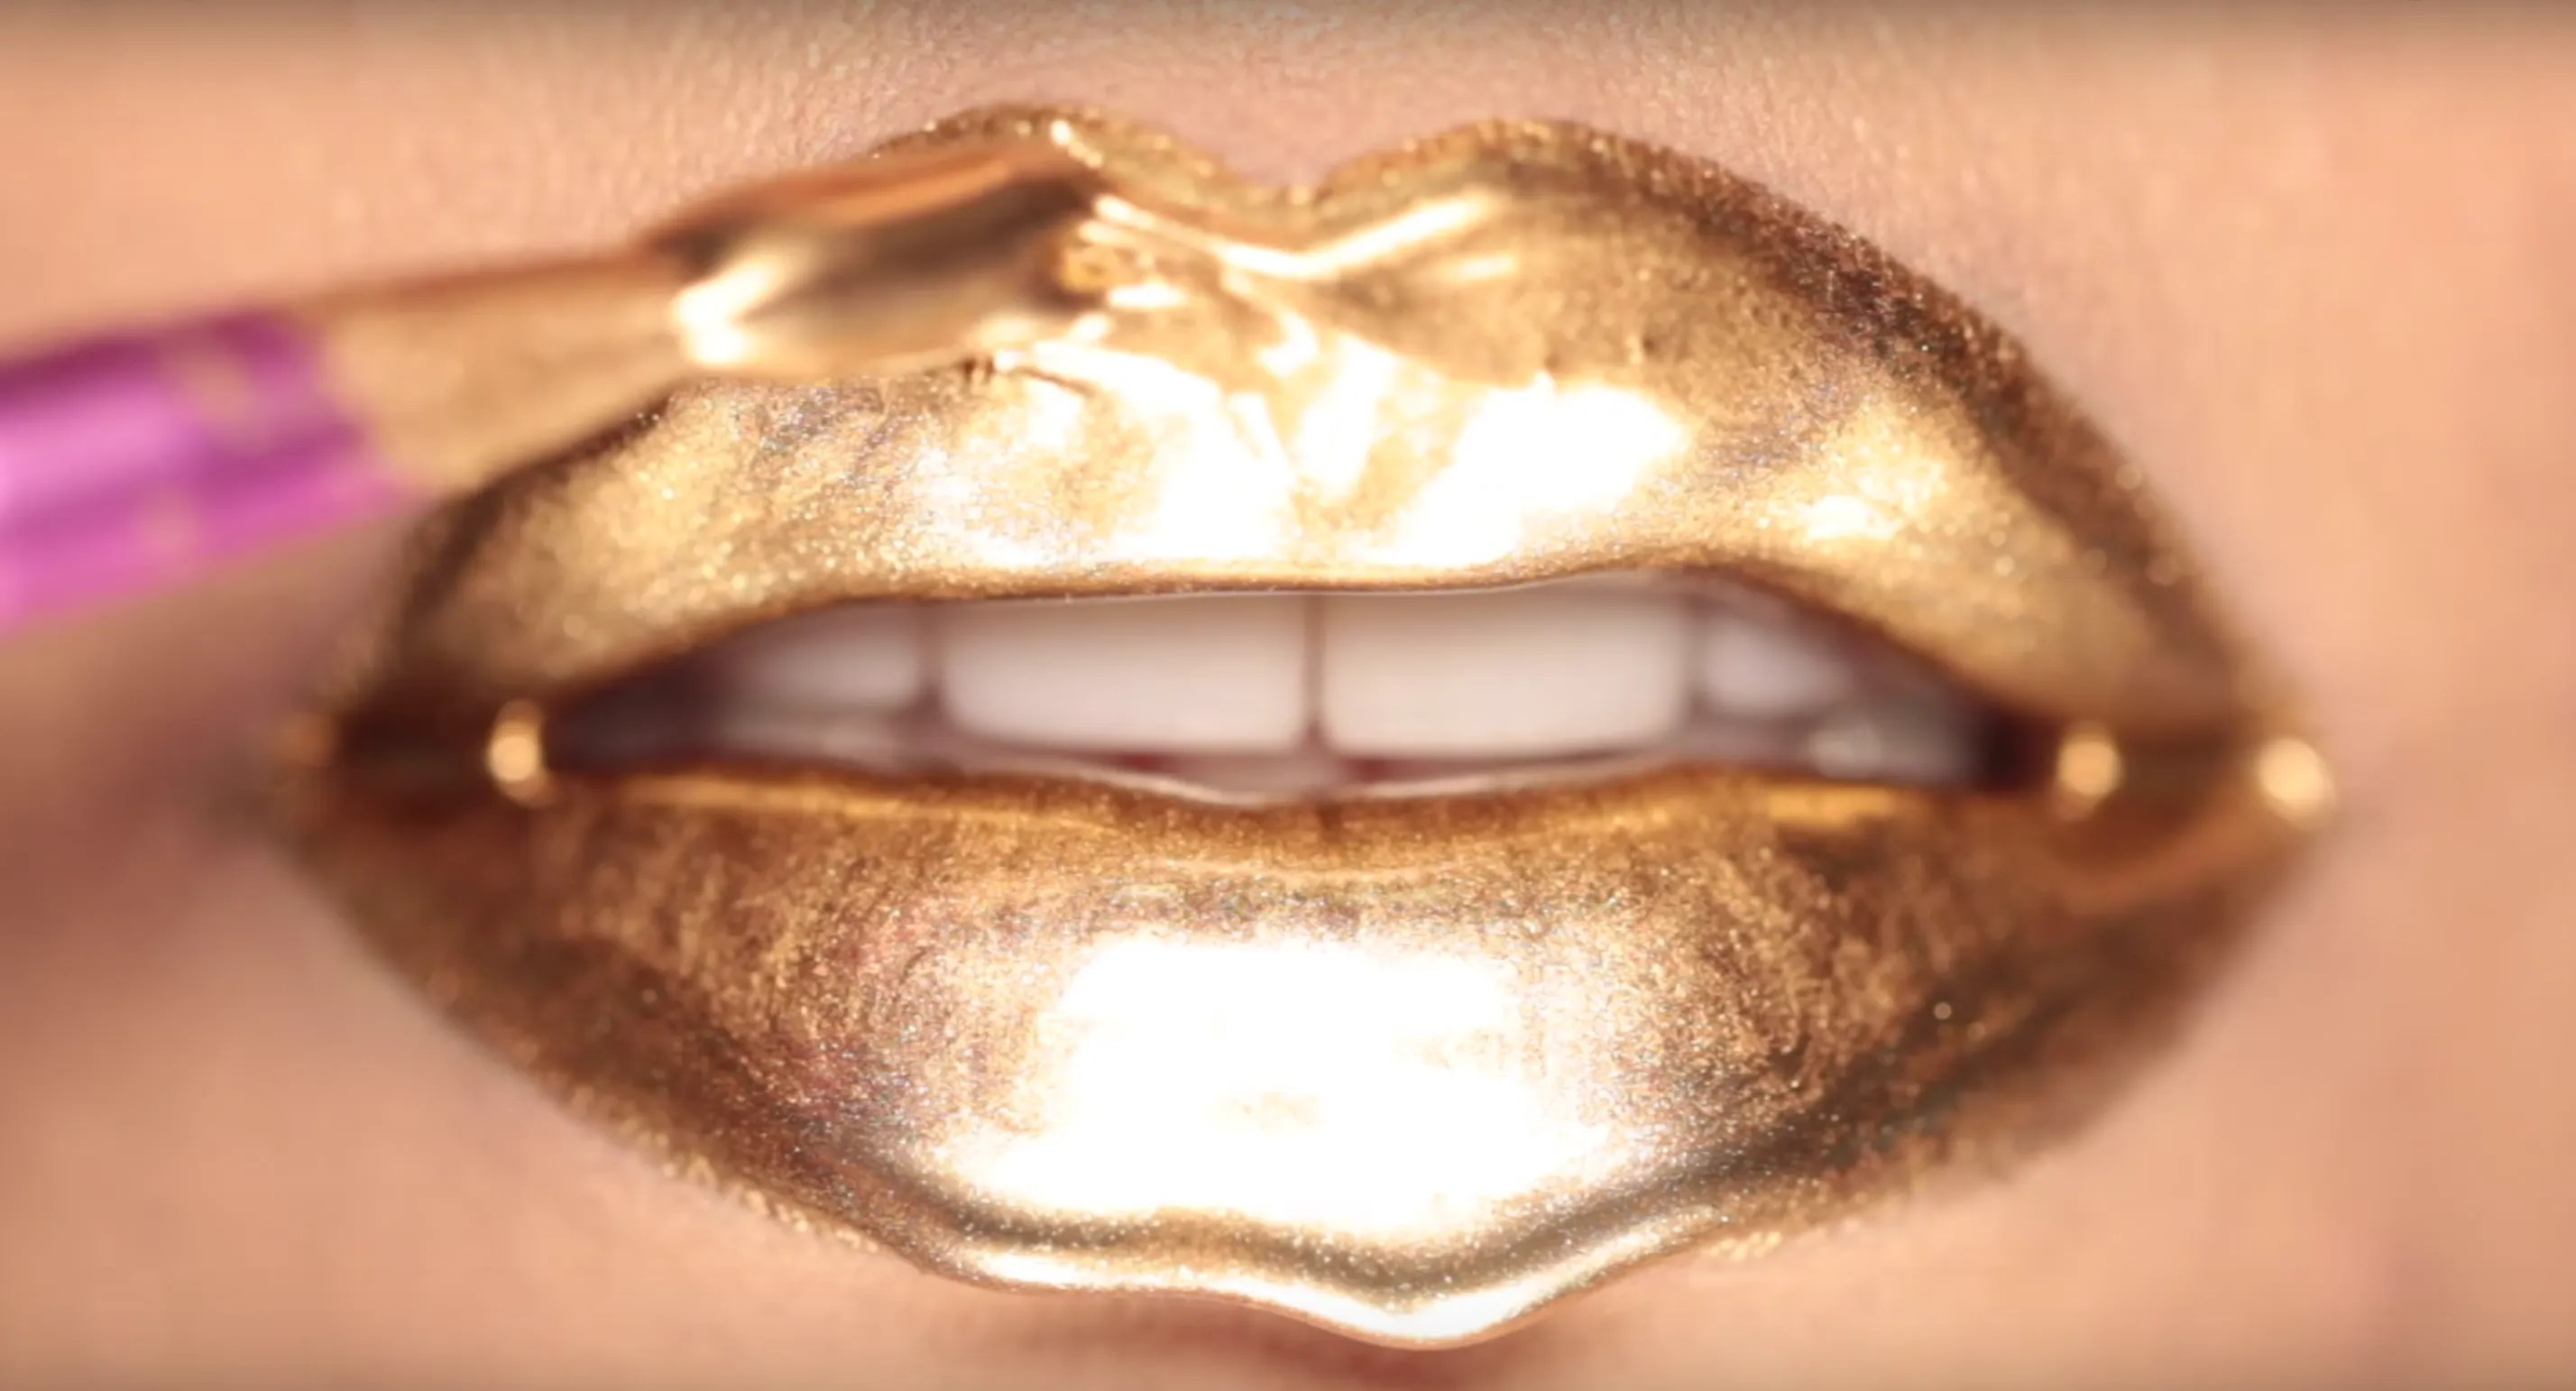 Beautiful Girl Lips Wallpaper This Mesmerizing Video Reveals How Those Drippy Lips On